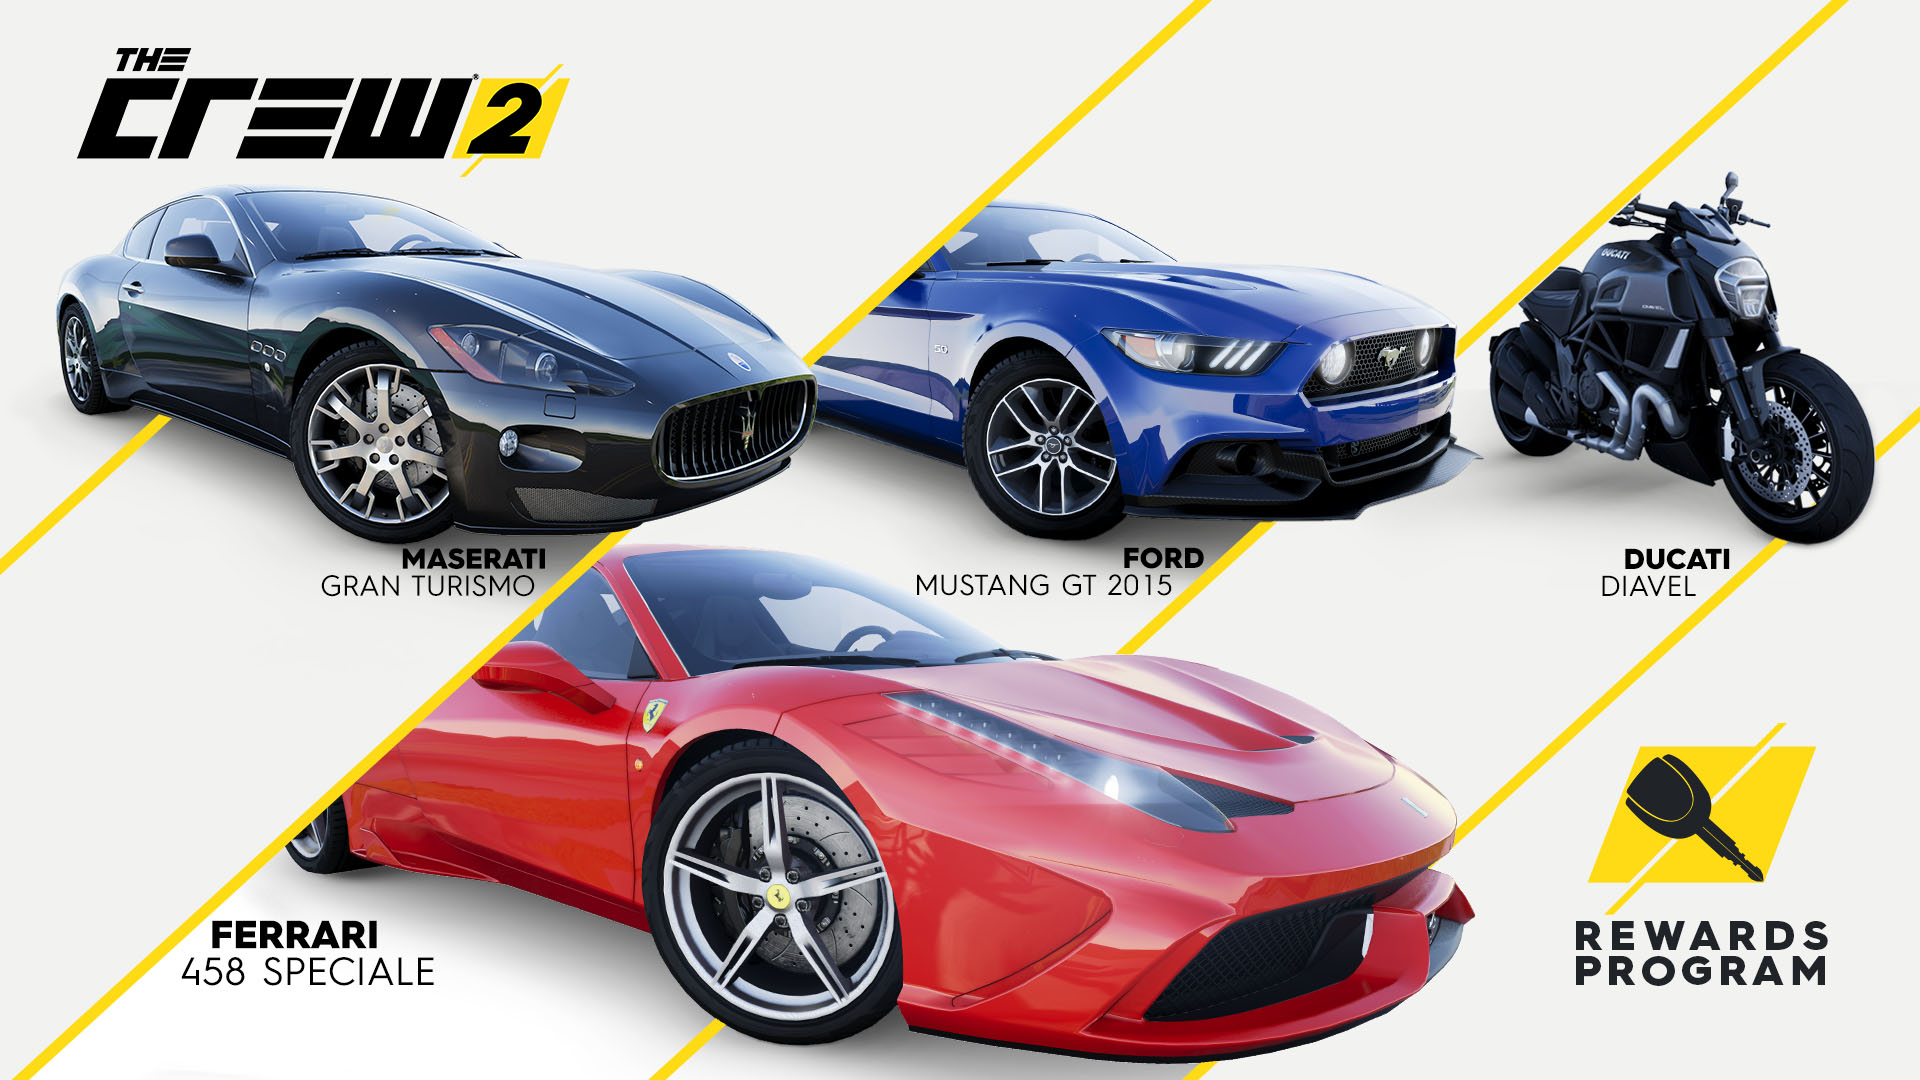 The Crew 2 : Rewards Program